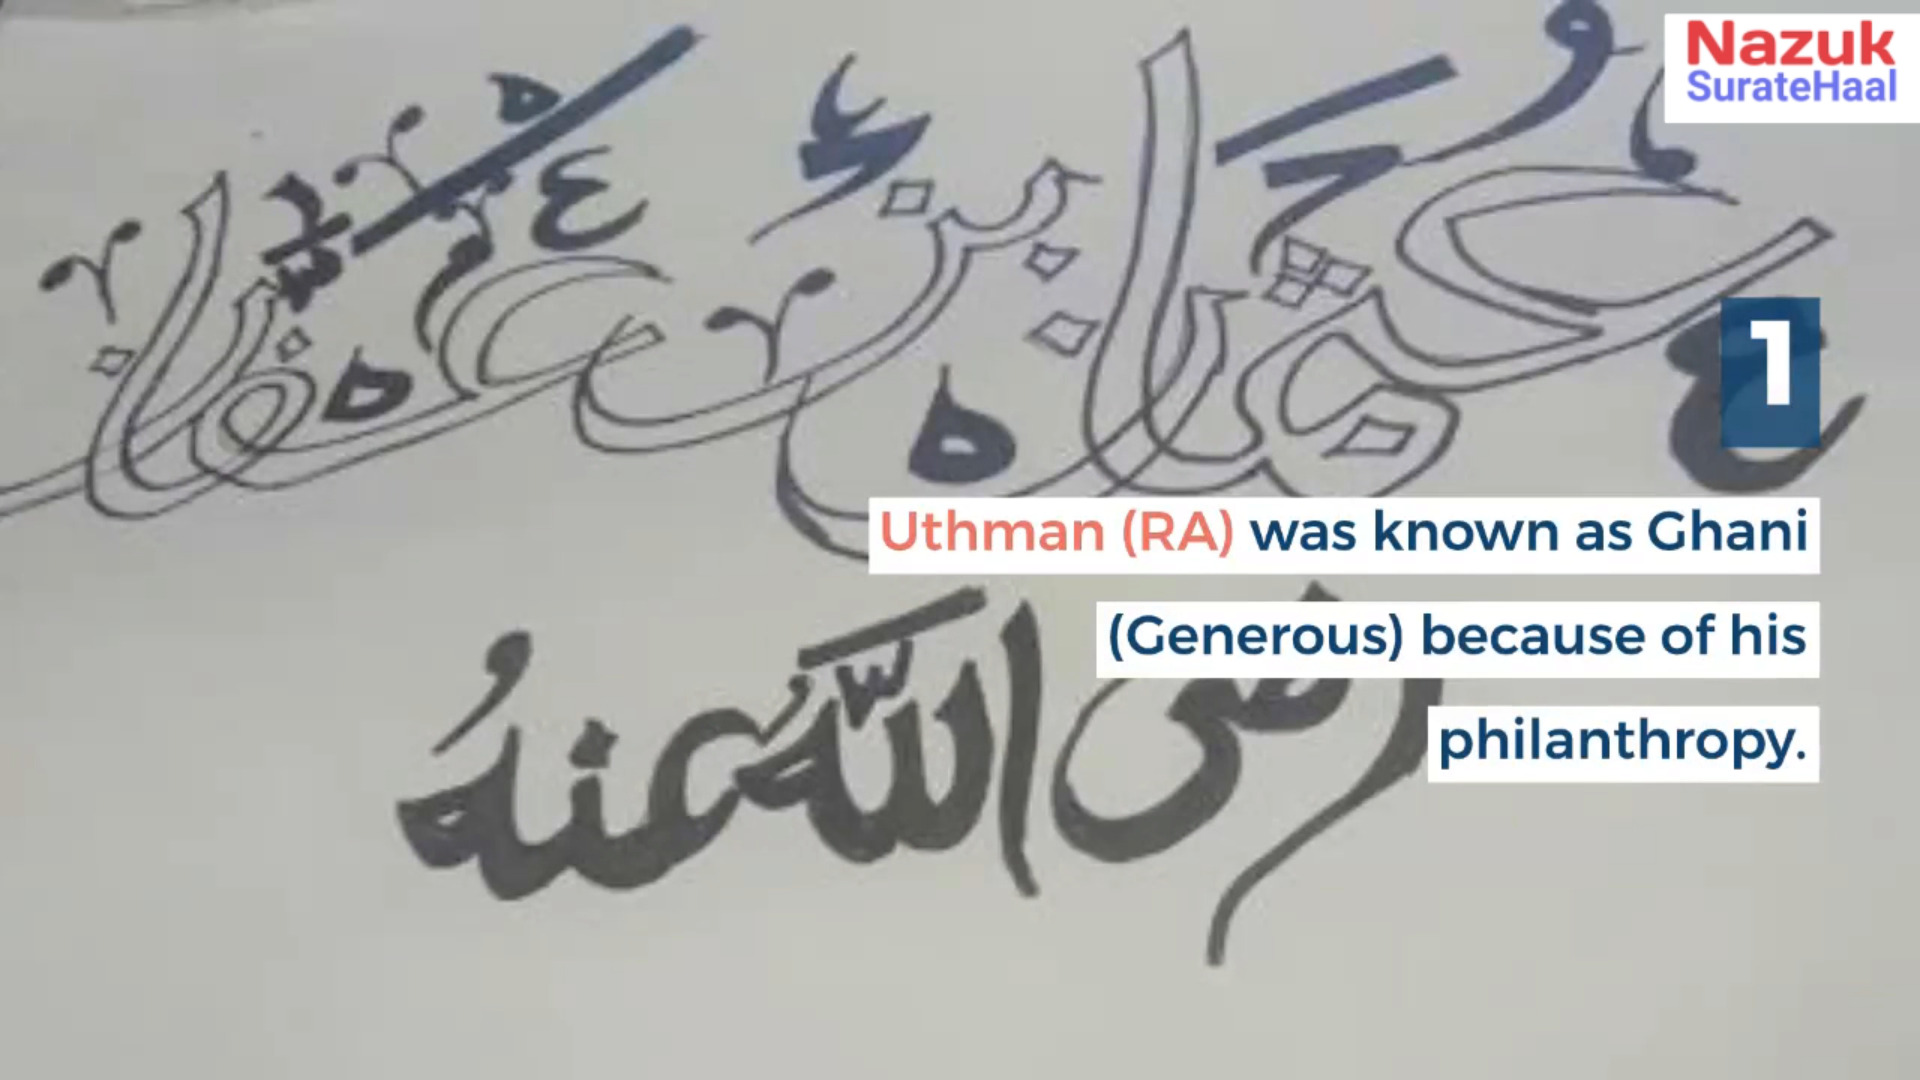 Uthman (RA) was known as Ghani (Generous) because of his philanthropy. His reign lasted around 12 years.